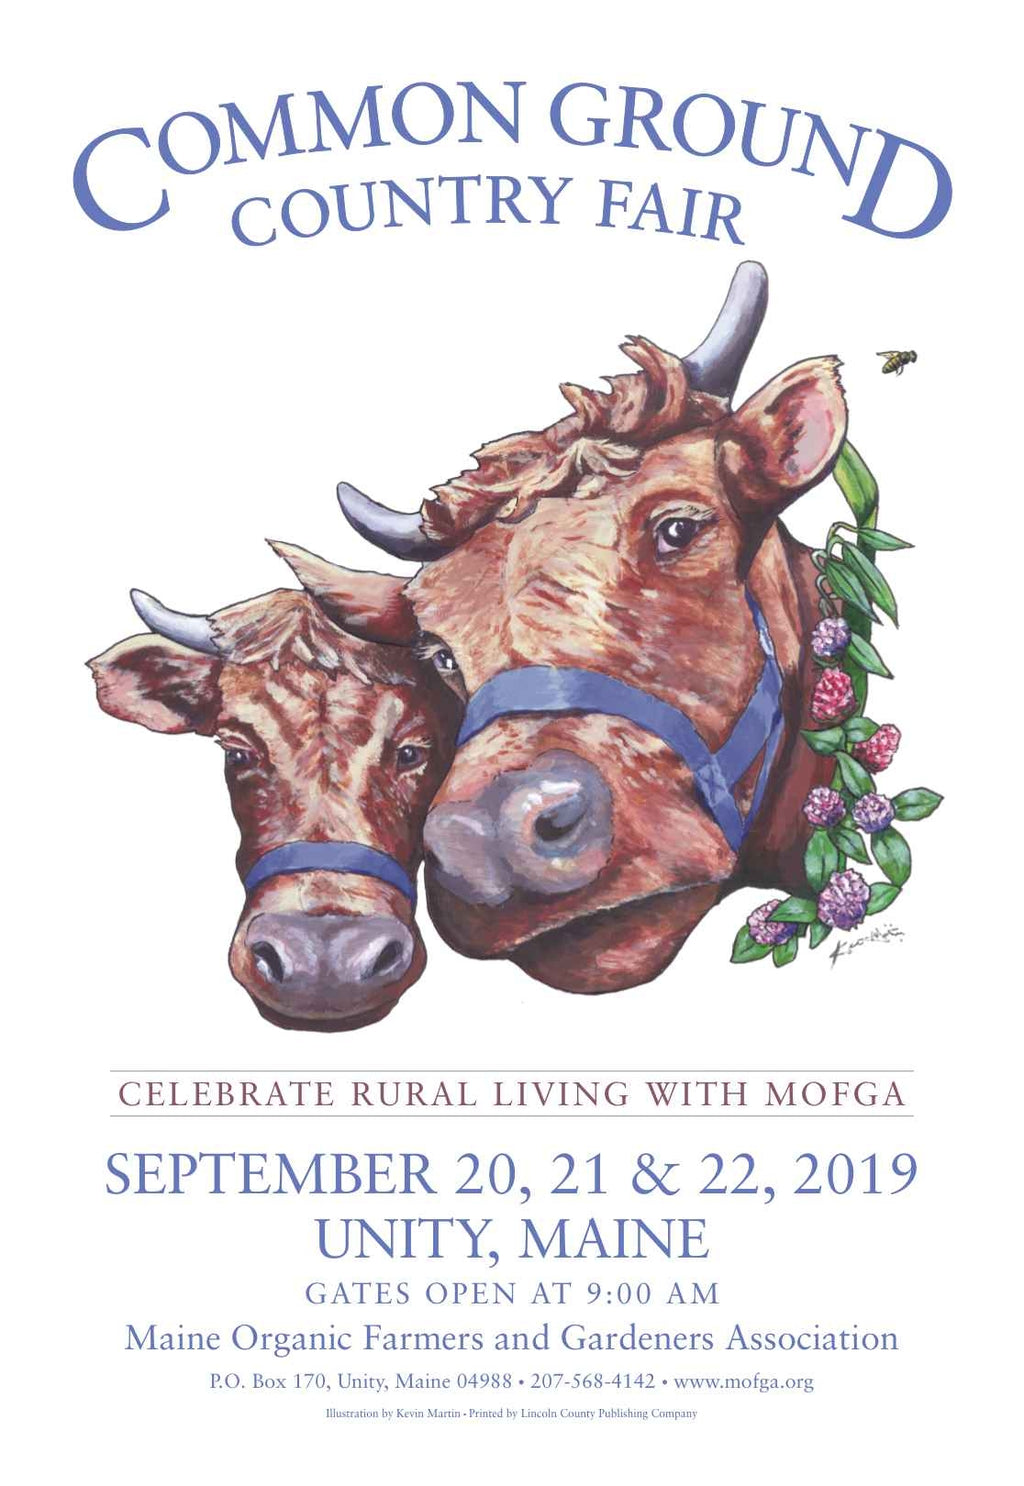 2019 Common Ground Country Fair poster. Dexter Heifers design. On white background